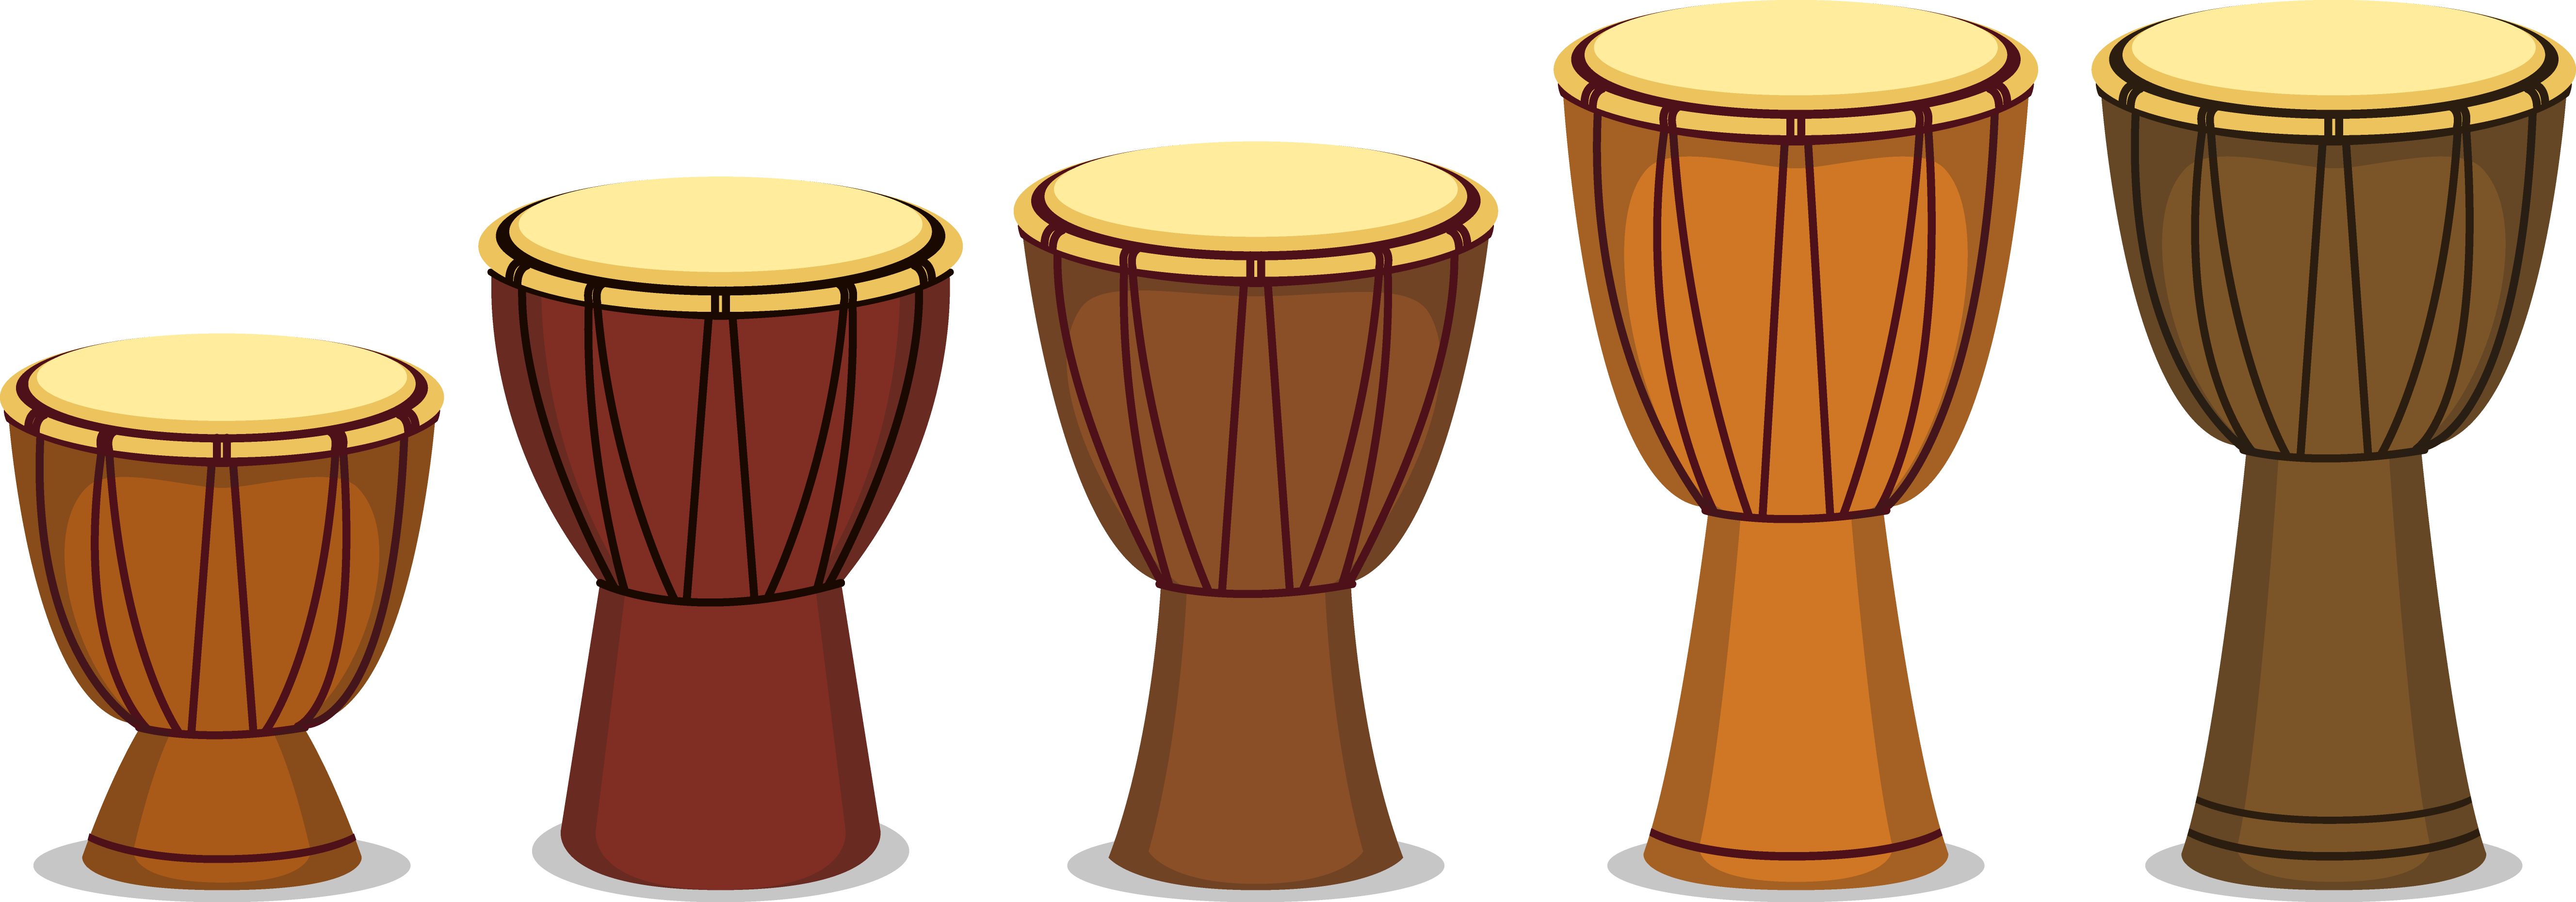 African drums png. Djembe tom drum music